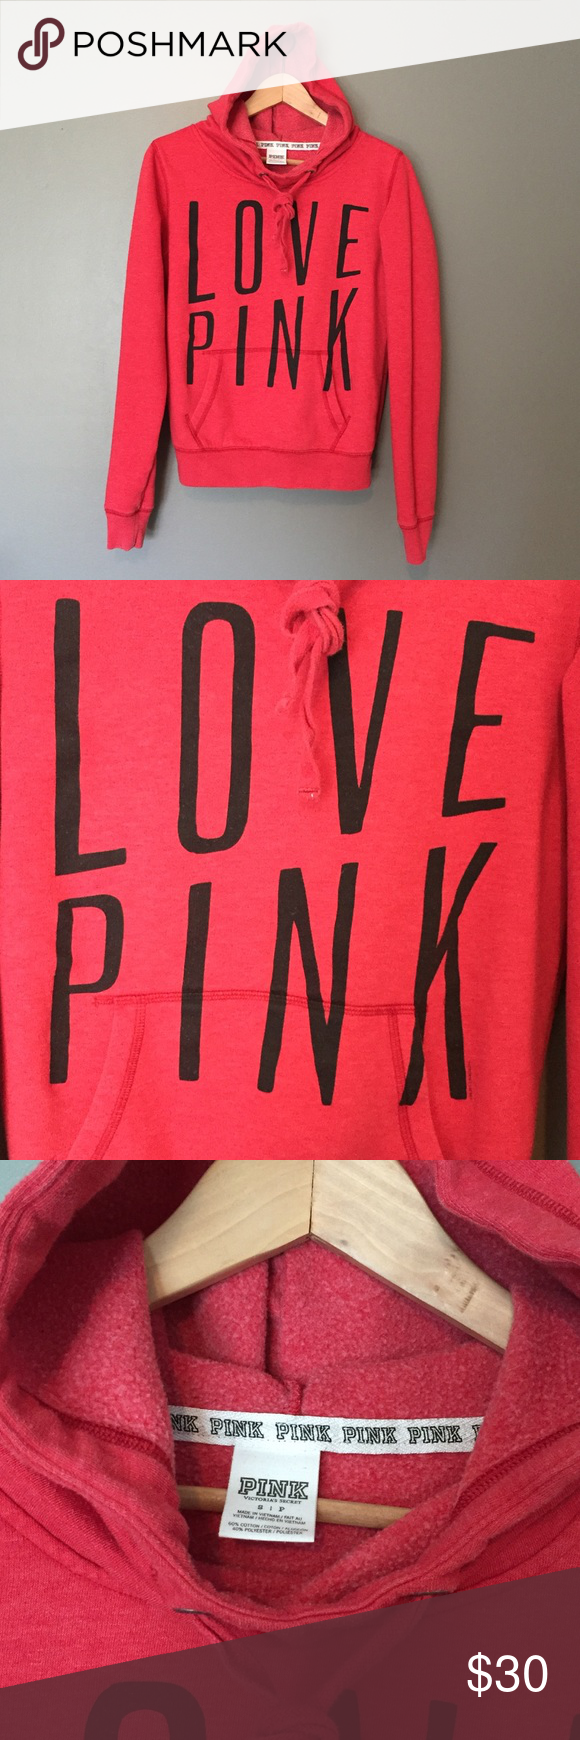 PINK VS hoodie sweatshirt | Pullover, Conditioning and Sweatshirt